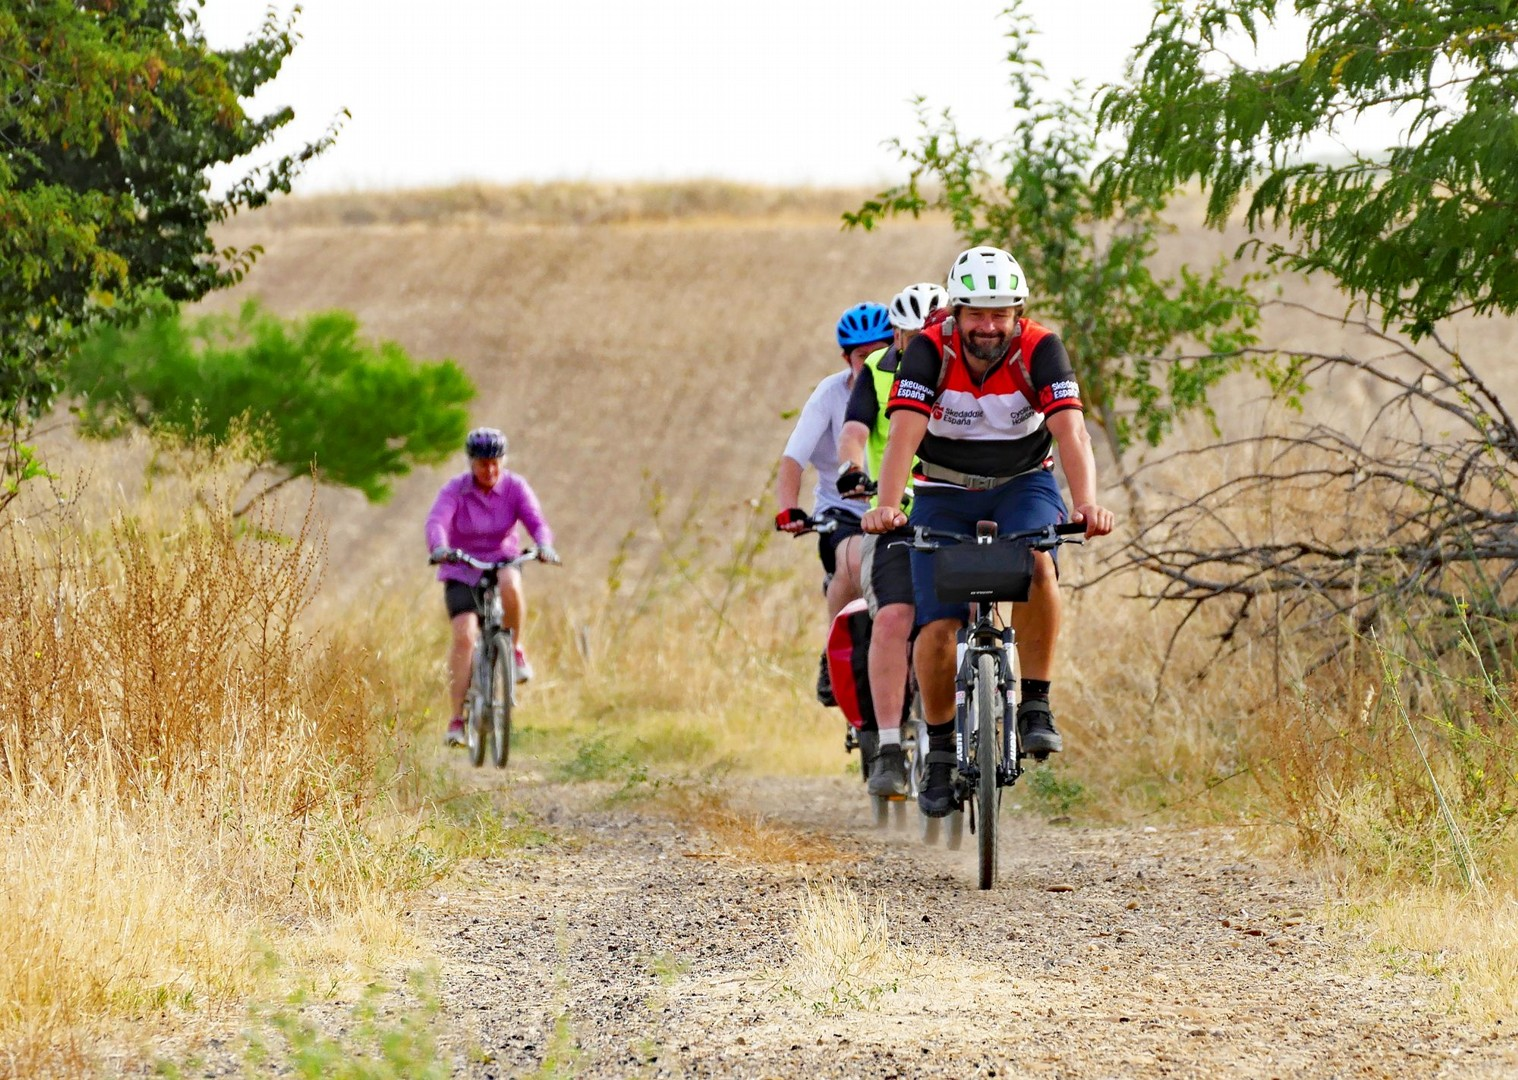 guided-leisure-cycling-holiday-southern-spain-granada-to-seville.jpg - Spain - Granada to Seville - Leisure Cycling